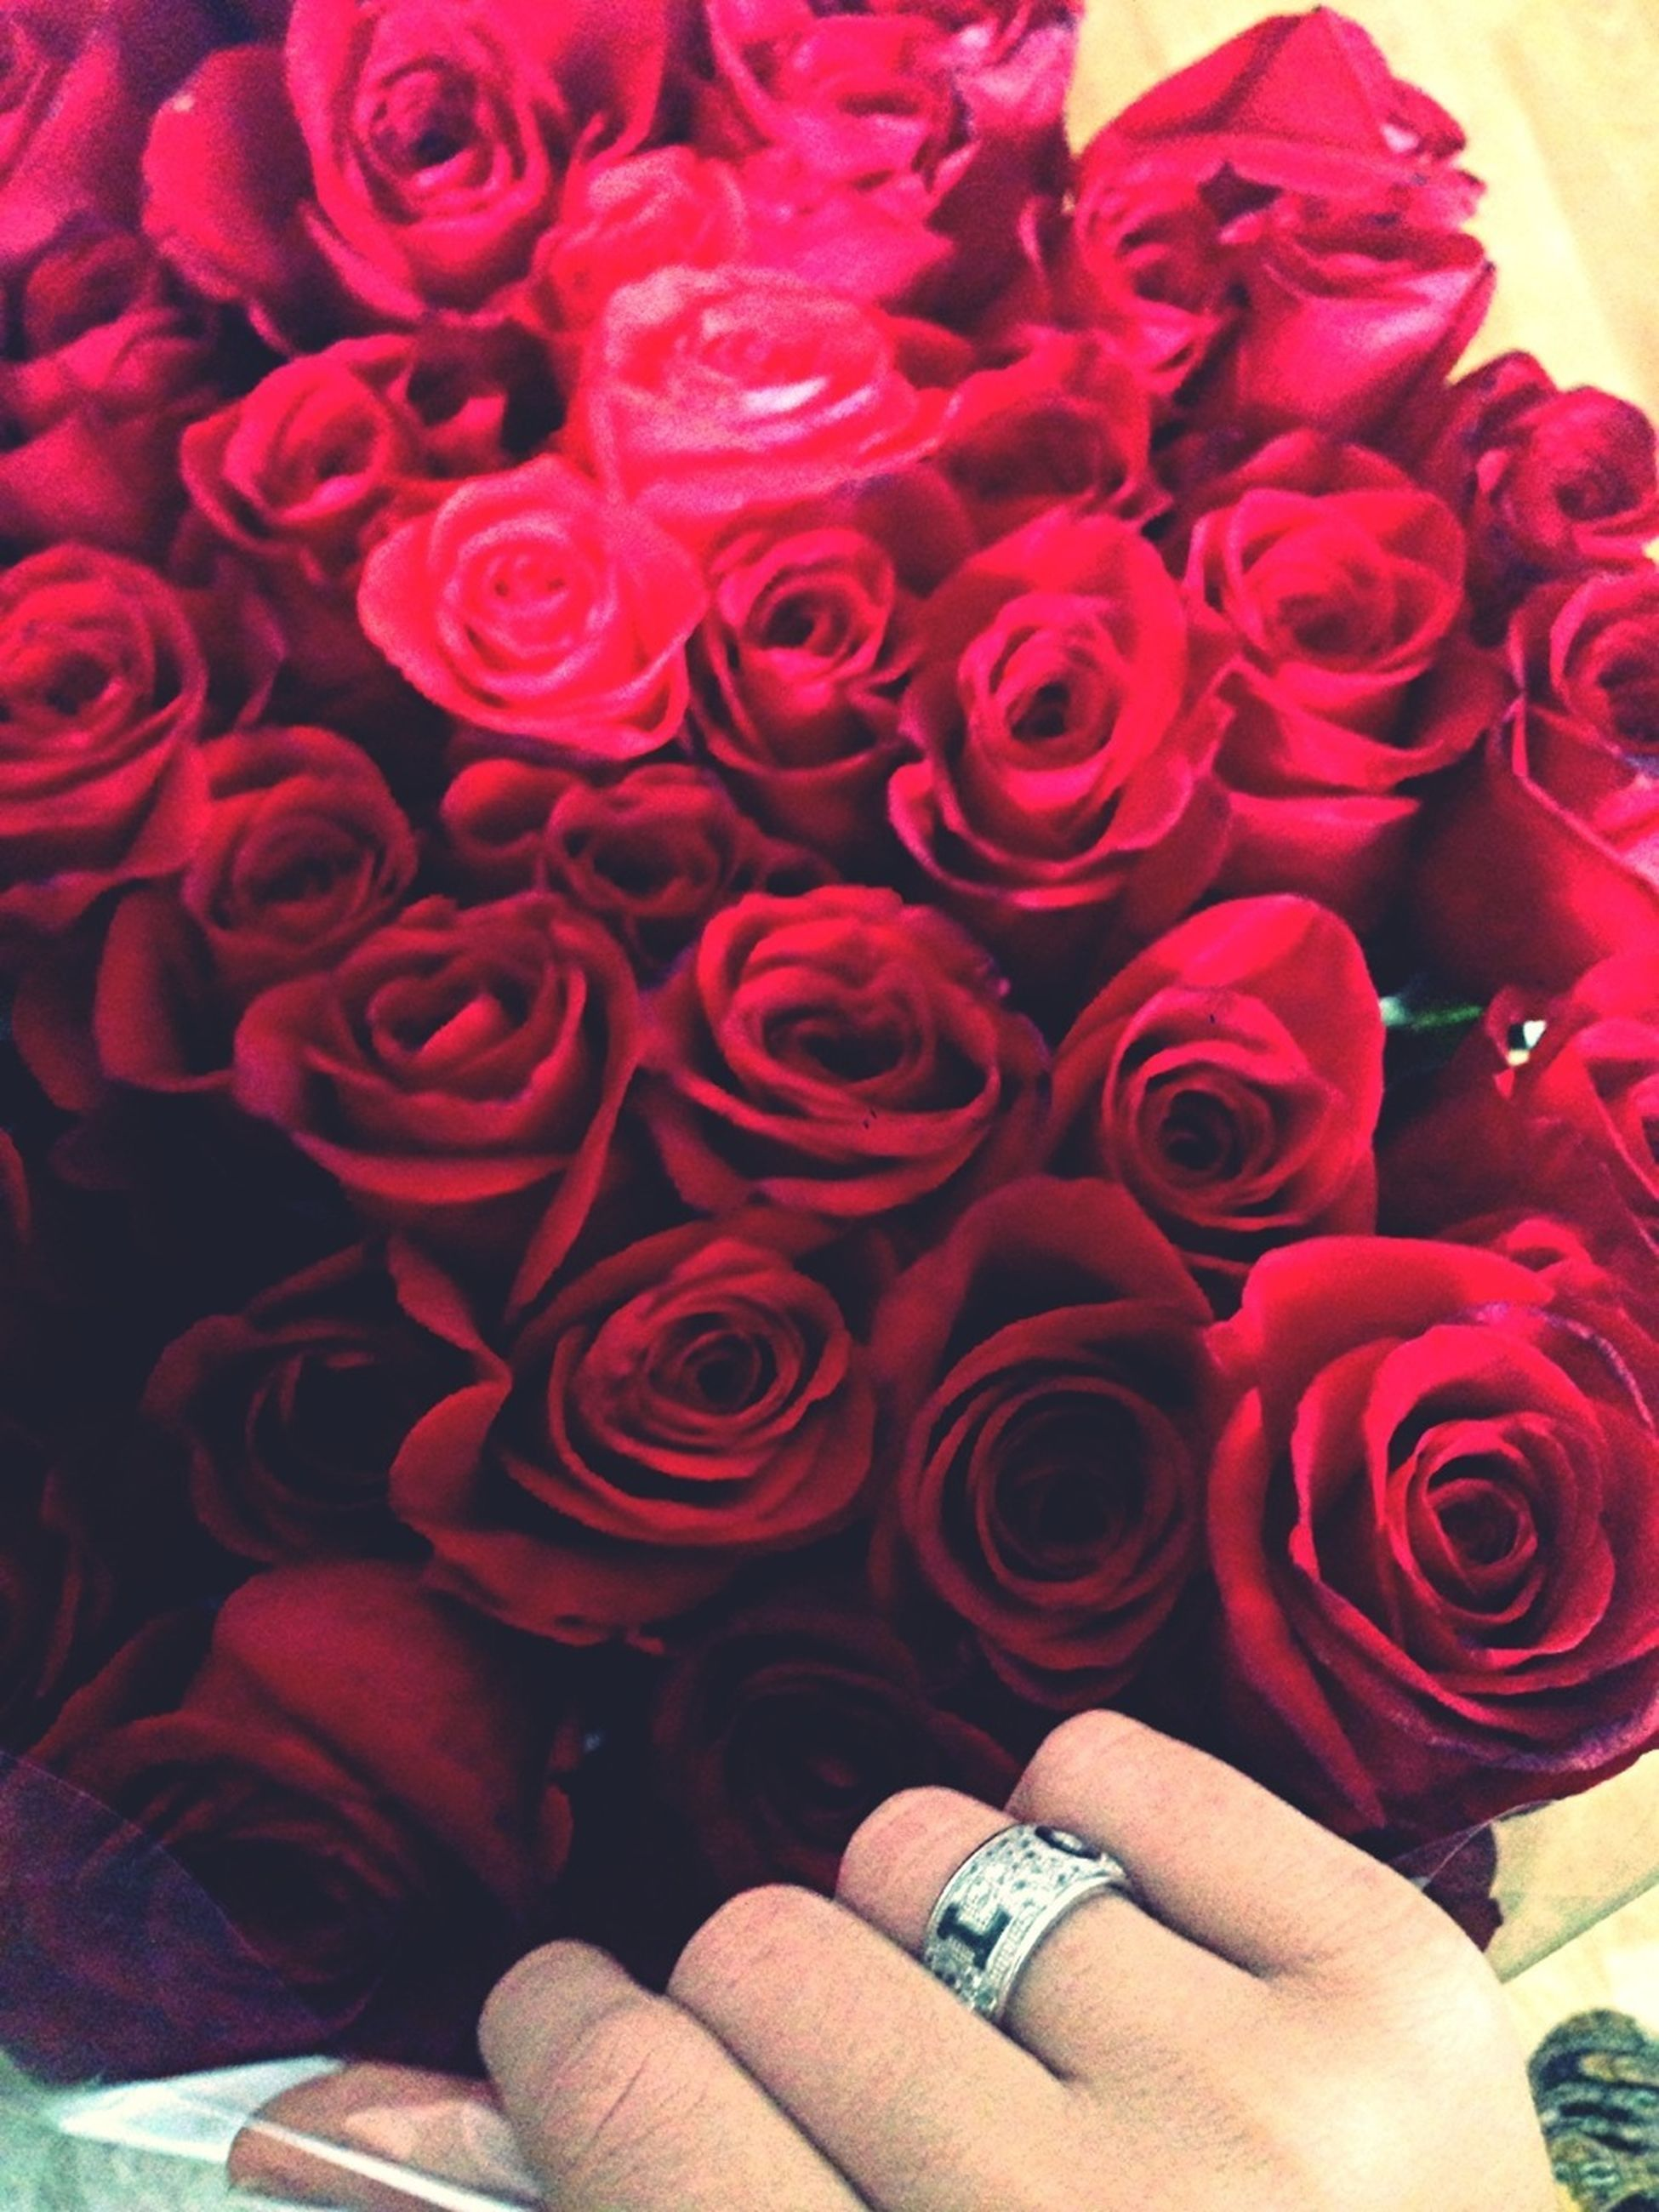 indoors, flower, person, red, lifestyles, pink color, high angle view, holding, part of, petal, leisure activity, close-up, bouquet, cropped, fragility, multi colored